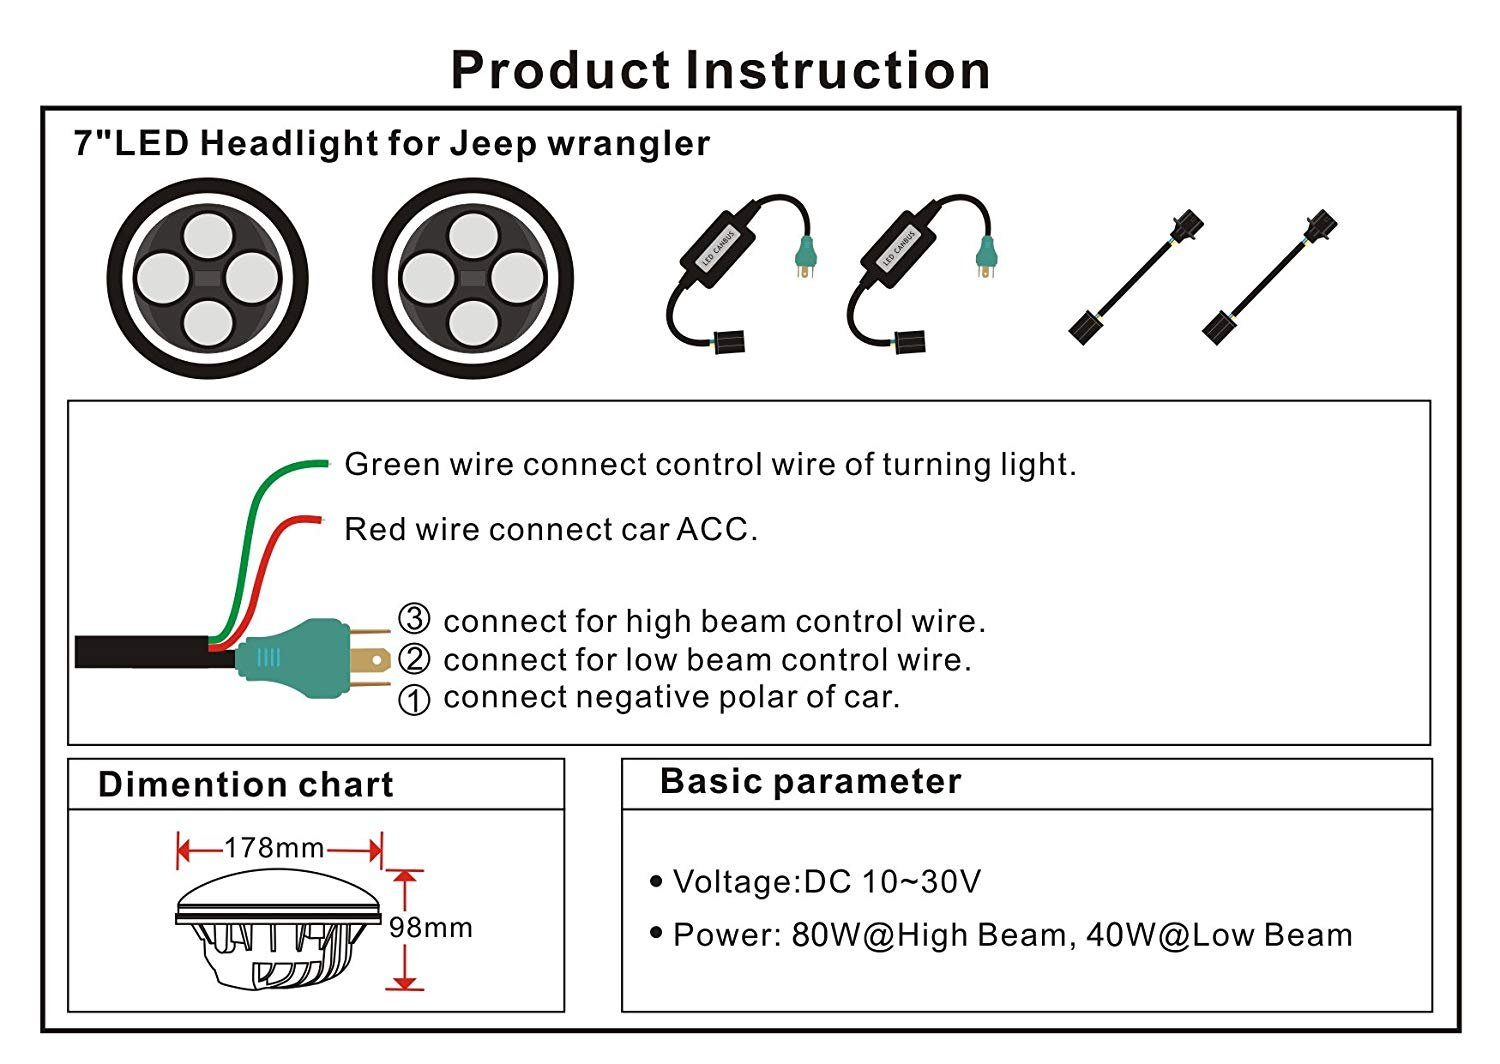 7 Led Halo Jeep Headlight Wiring Diagram - Machine Repair Manual Halo Light Wiring Diagram Home on